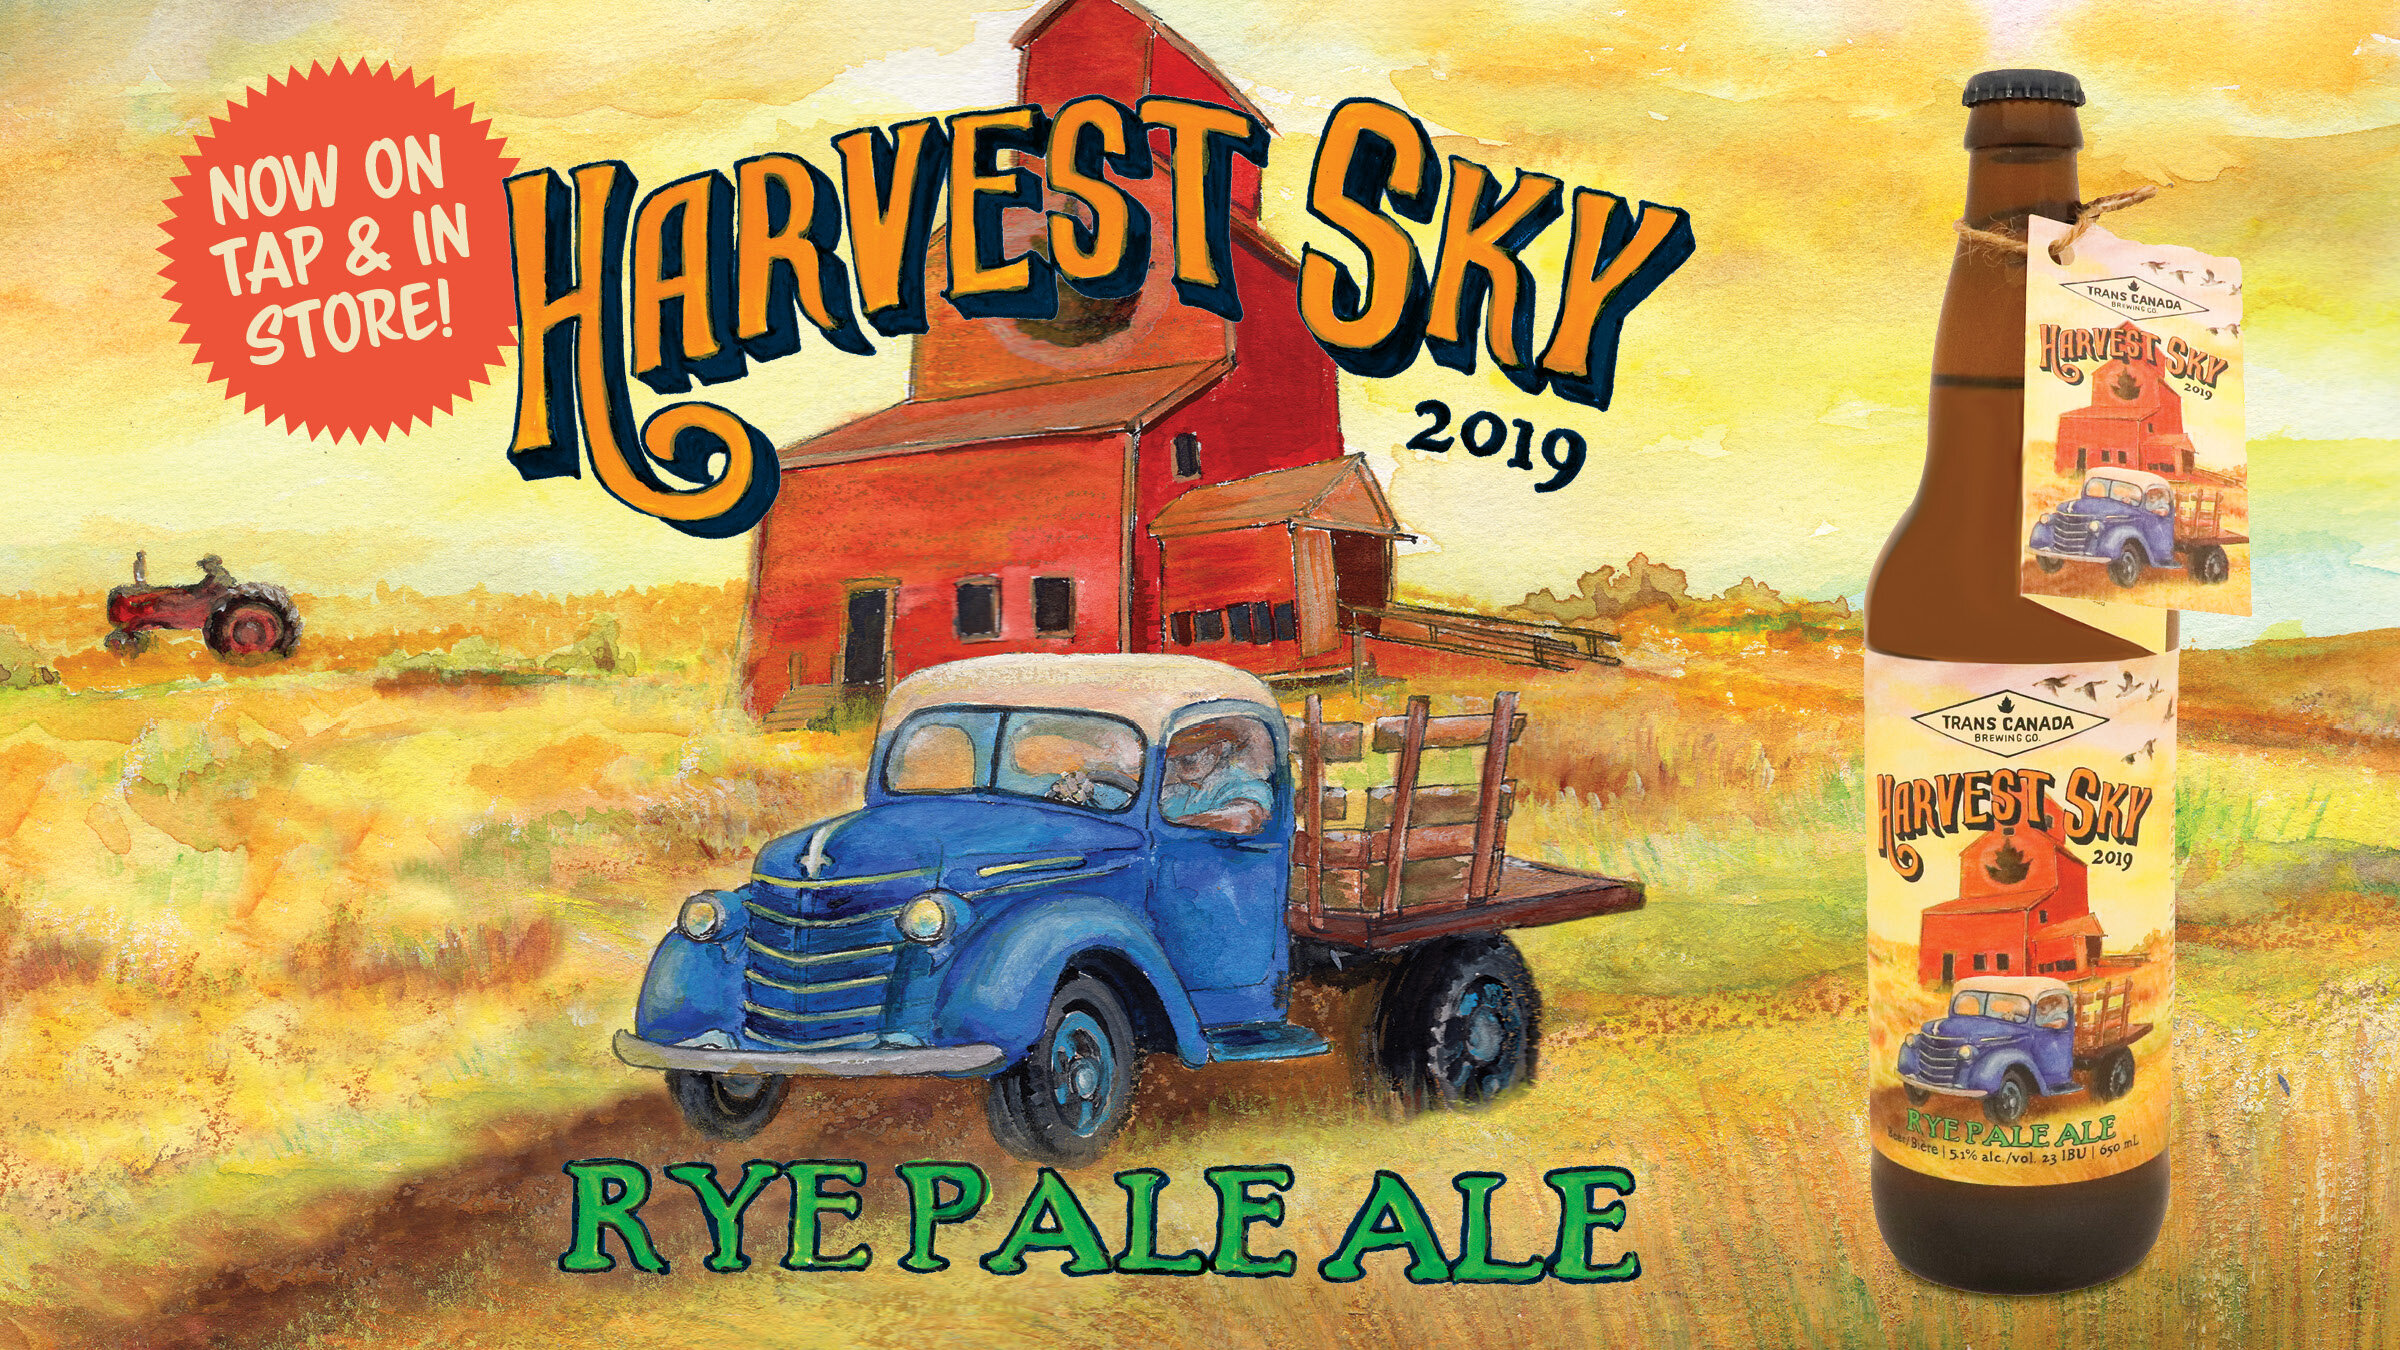 TCB Harvest Sky 2019 Screen 20191009.jpg